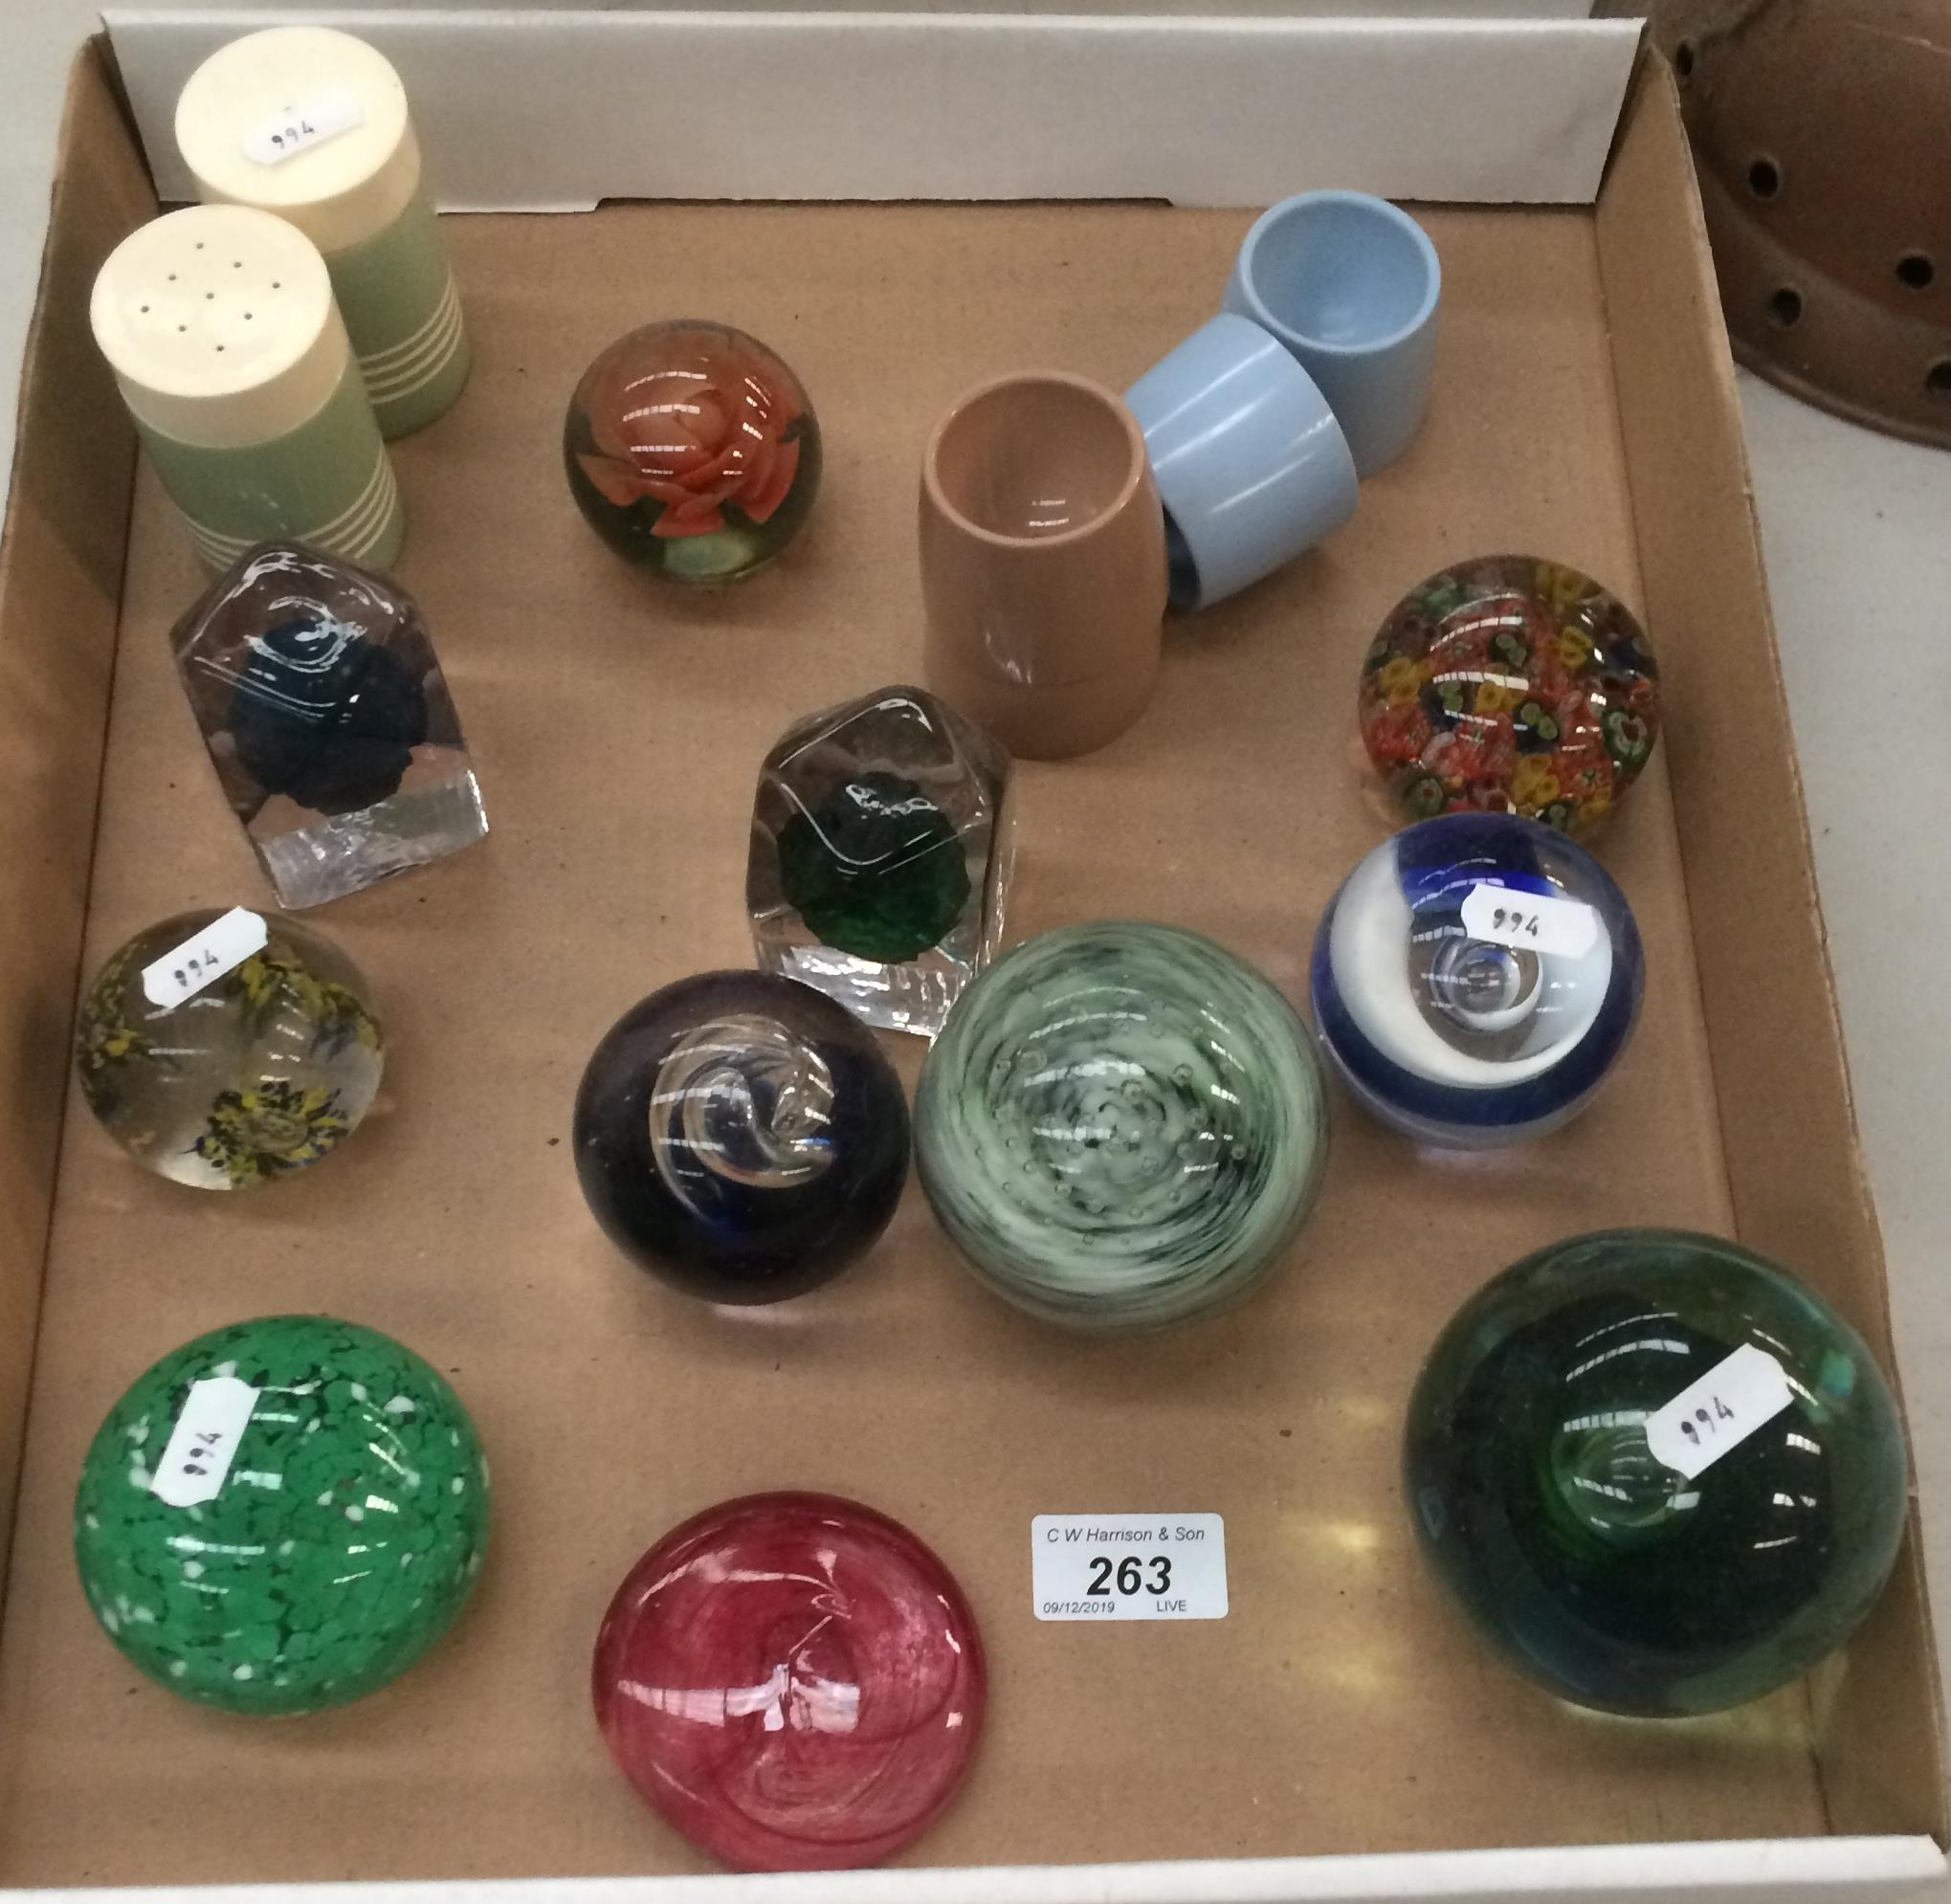 Lot 263 - Contents to tray - eleven glass paperweights,